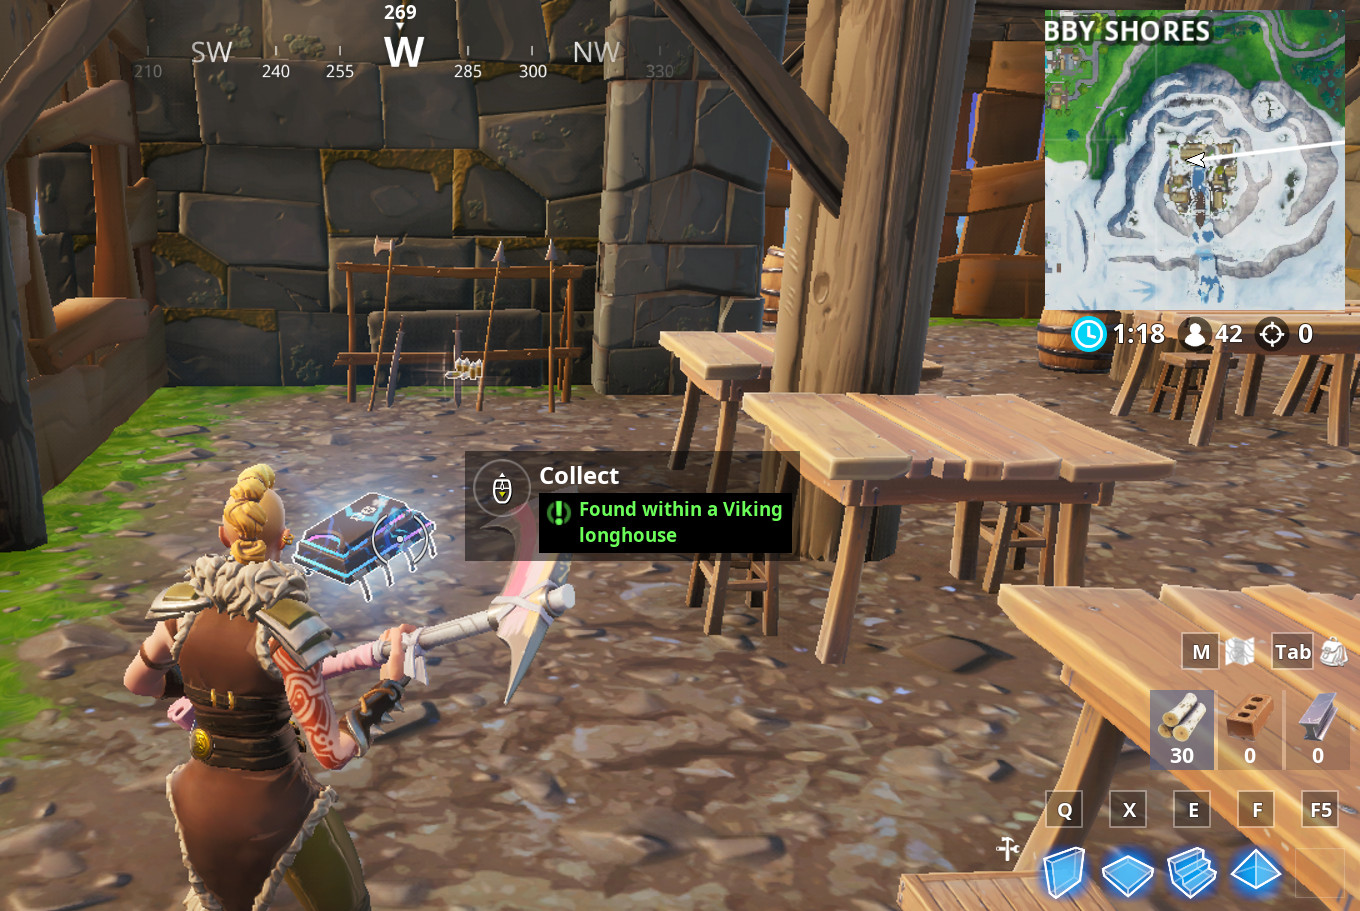 Find all of Fortnite Fortbytes with our map - Polygon